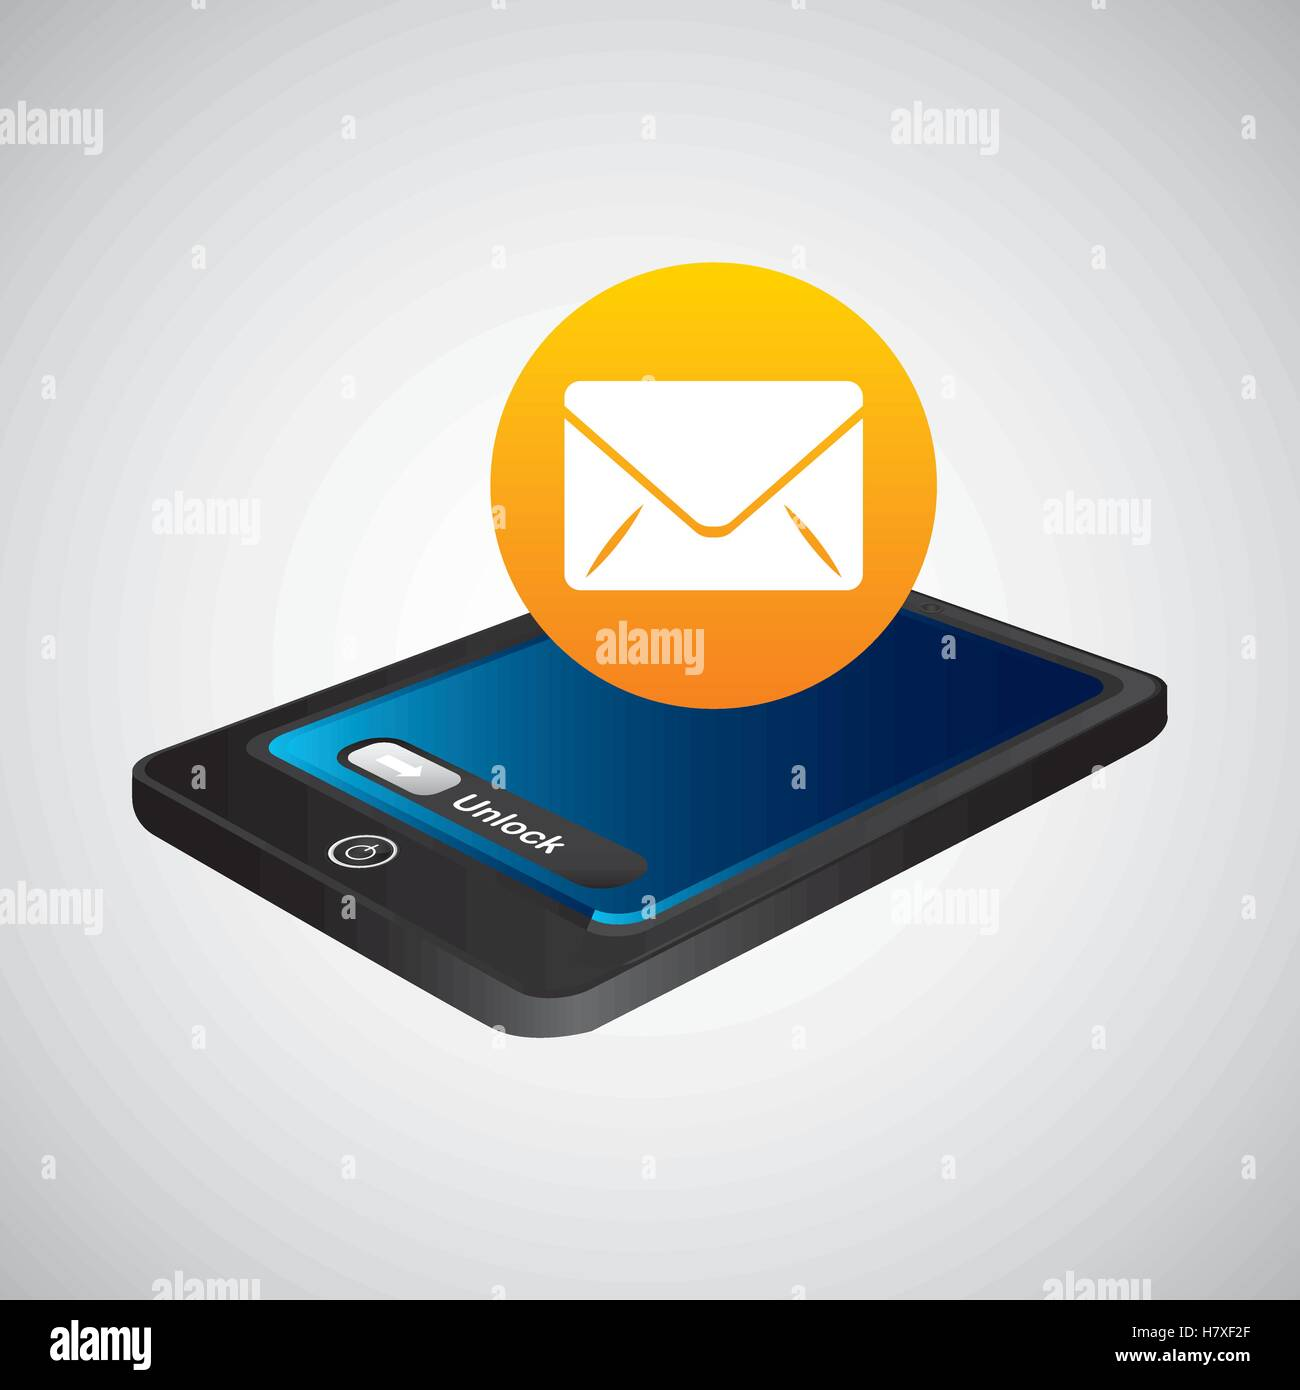 smartphone blue screen unlock icon email vector illustration eps 10 - Stock Vector